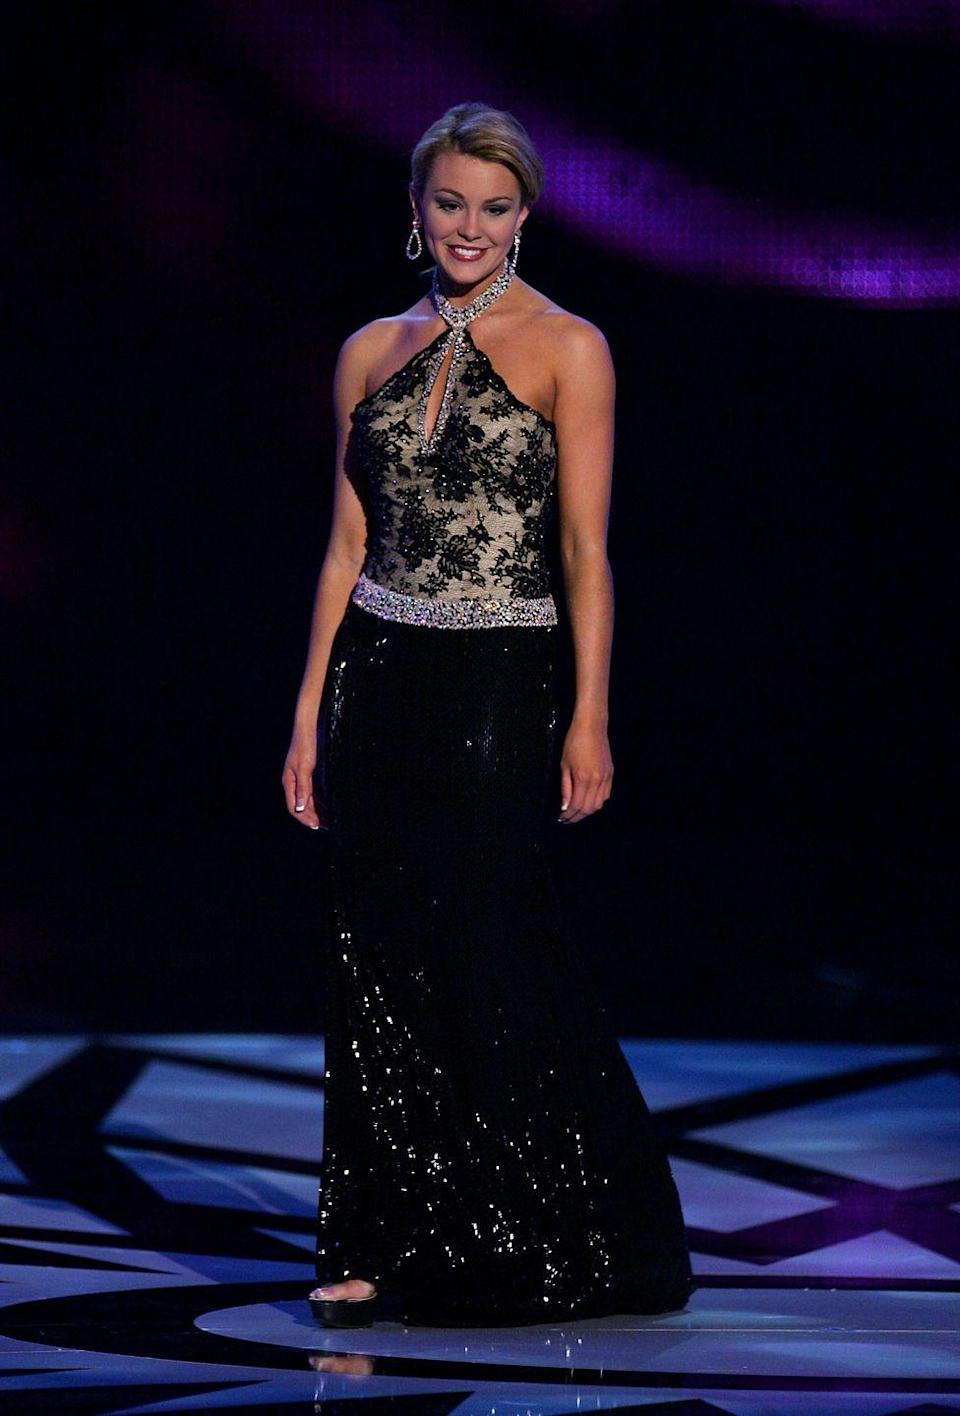 <p>Miss Oklahoma was crowned Miss America two years in a row. In 2007, it was Lauren Nelson who wowed the judges in an elaborate beaded black evening gown. </p>